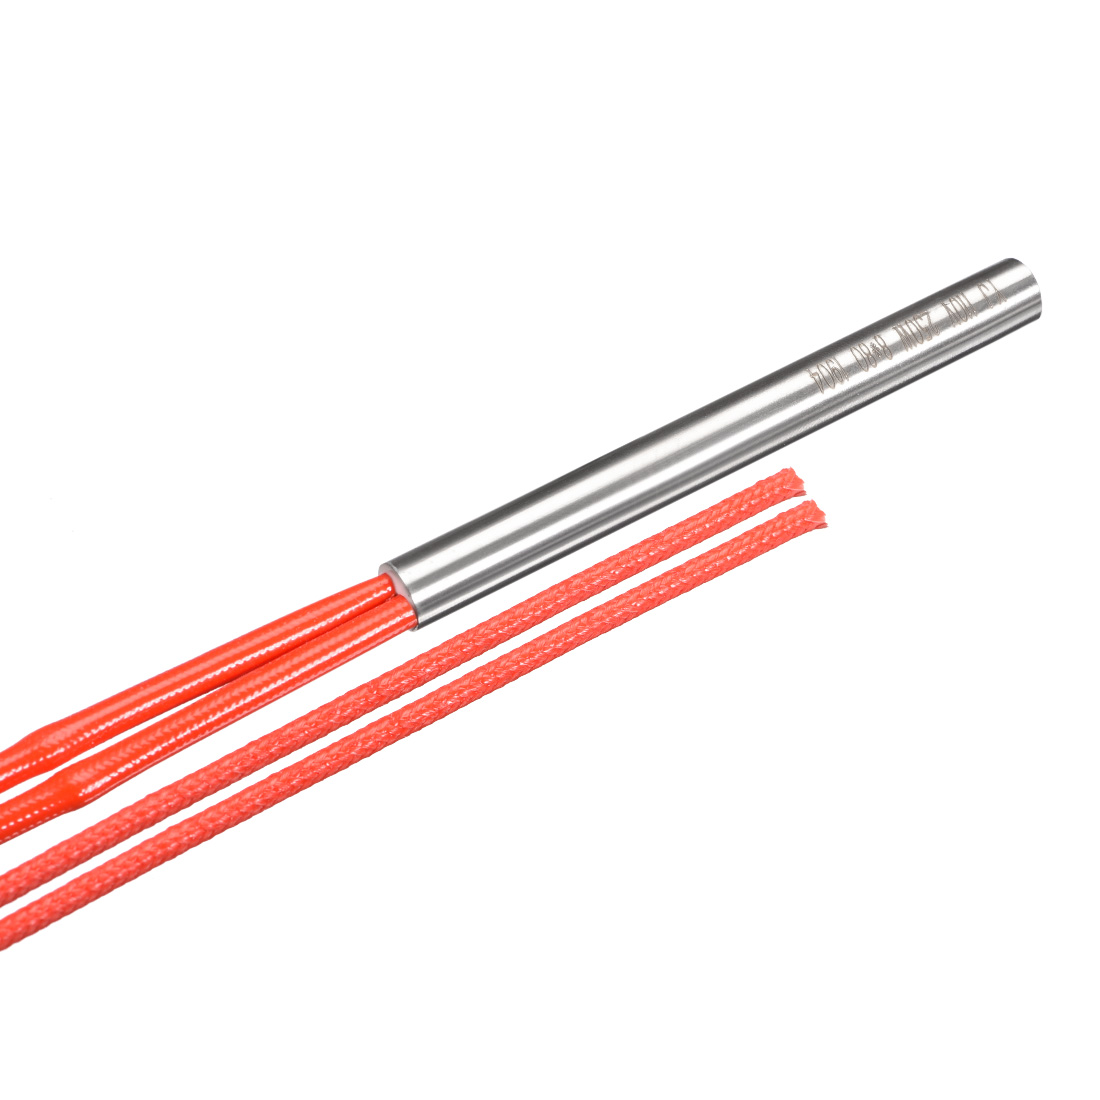 Cartridge Heater AC 110V 250w Stainless Steel Heating Element 8mmx80mm